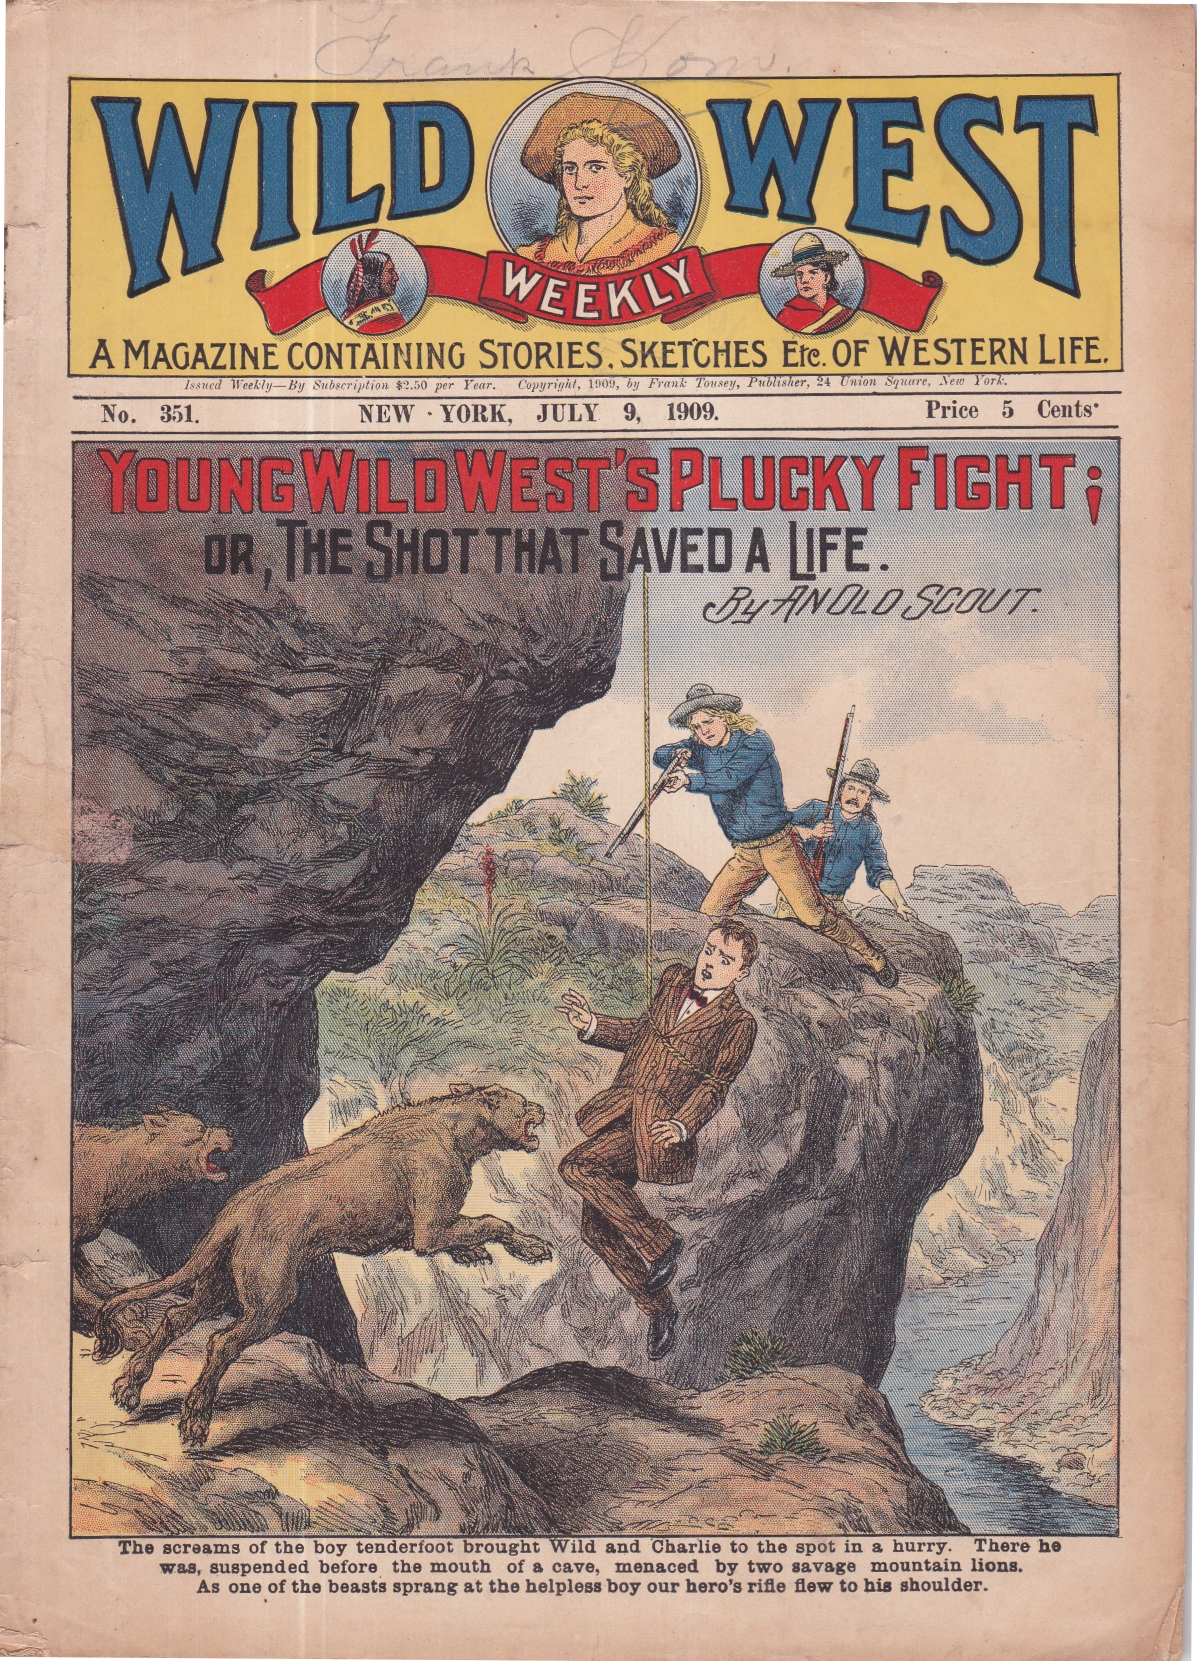 Wild West Weekly No. 351, July 9, 1909.jpg